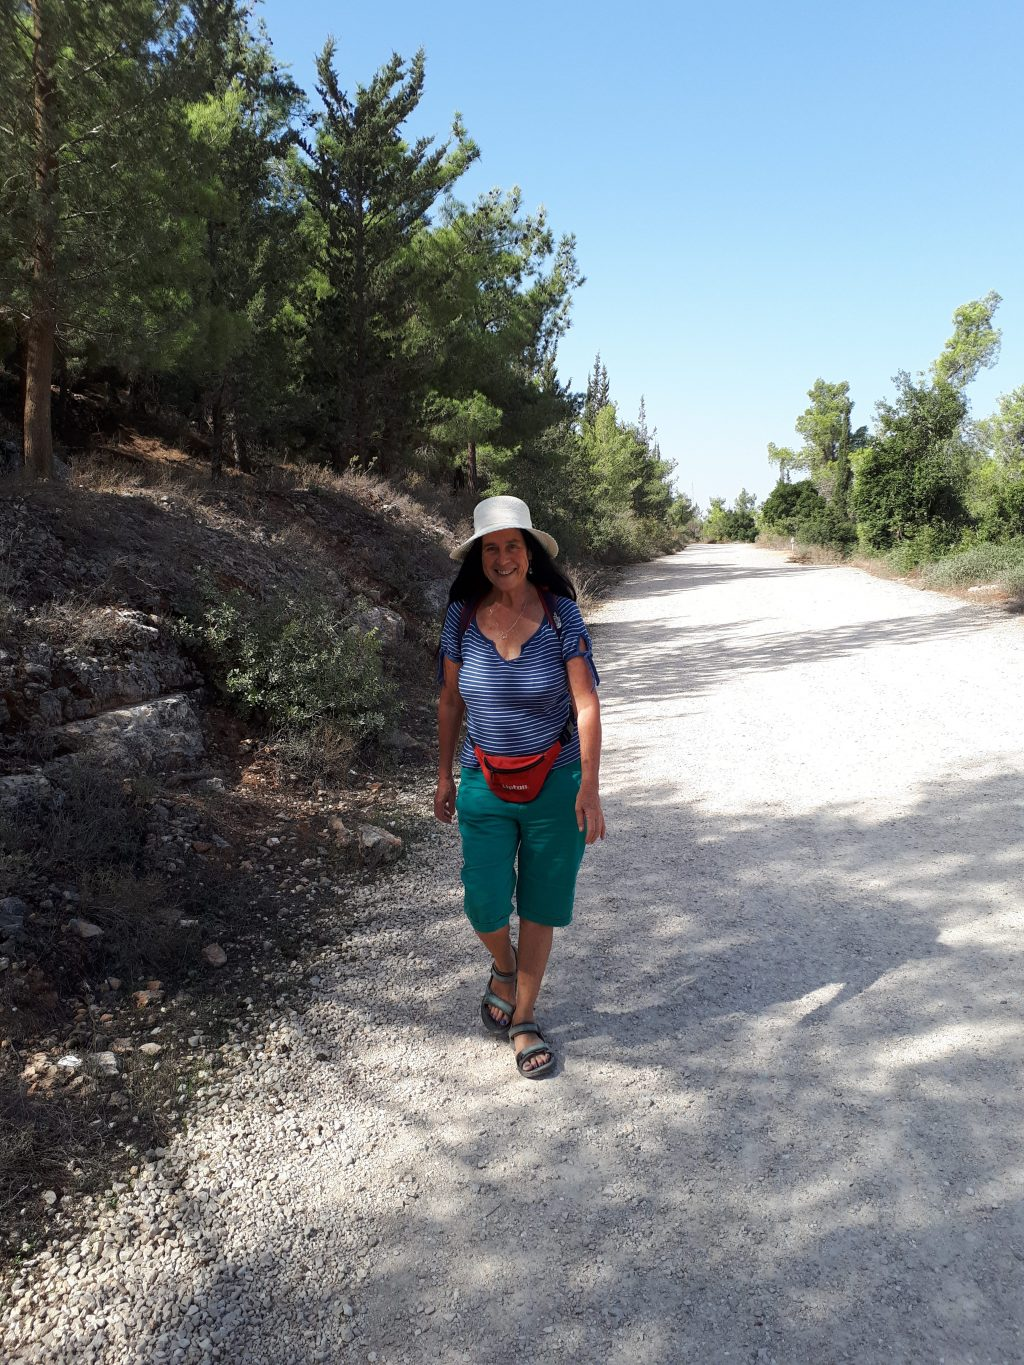 Preparing For A Camping Trip - Walking In Har Eitan, Jeruslame Vicinity